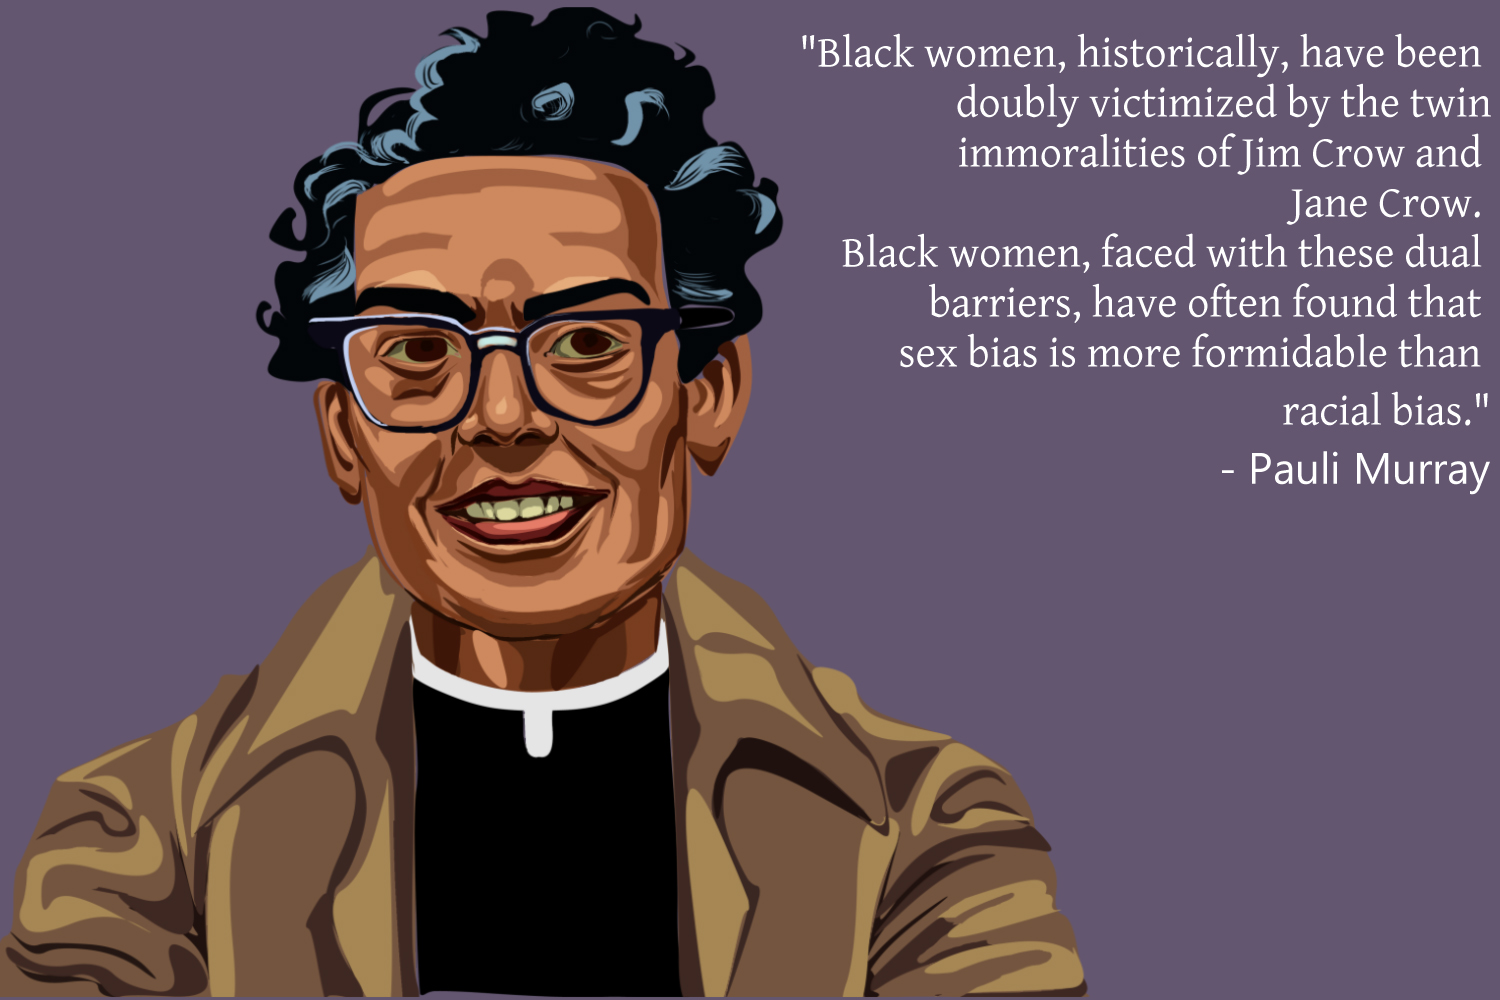 unsung hero essay recognition for unsung heroes at upcoming mandi  a visual tribute to an unsung hero of black history pauli murray paulimurray kiara original cw